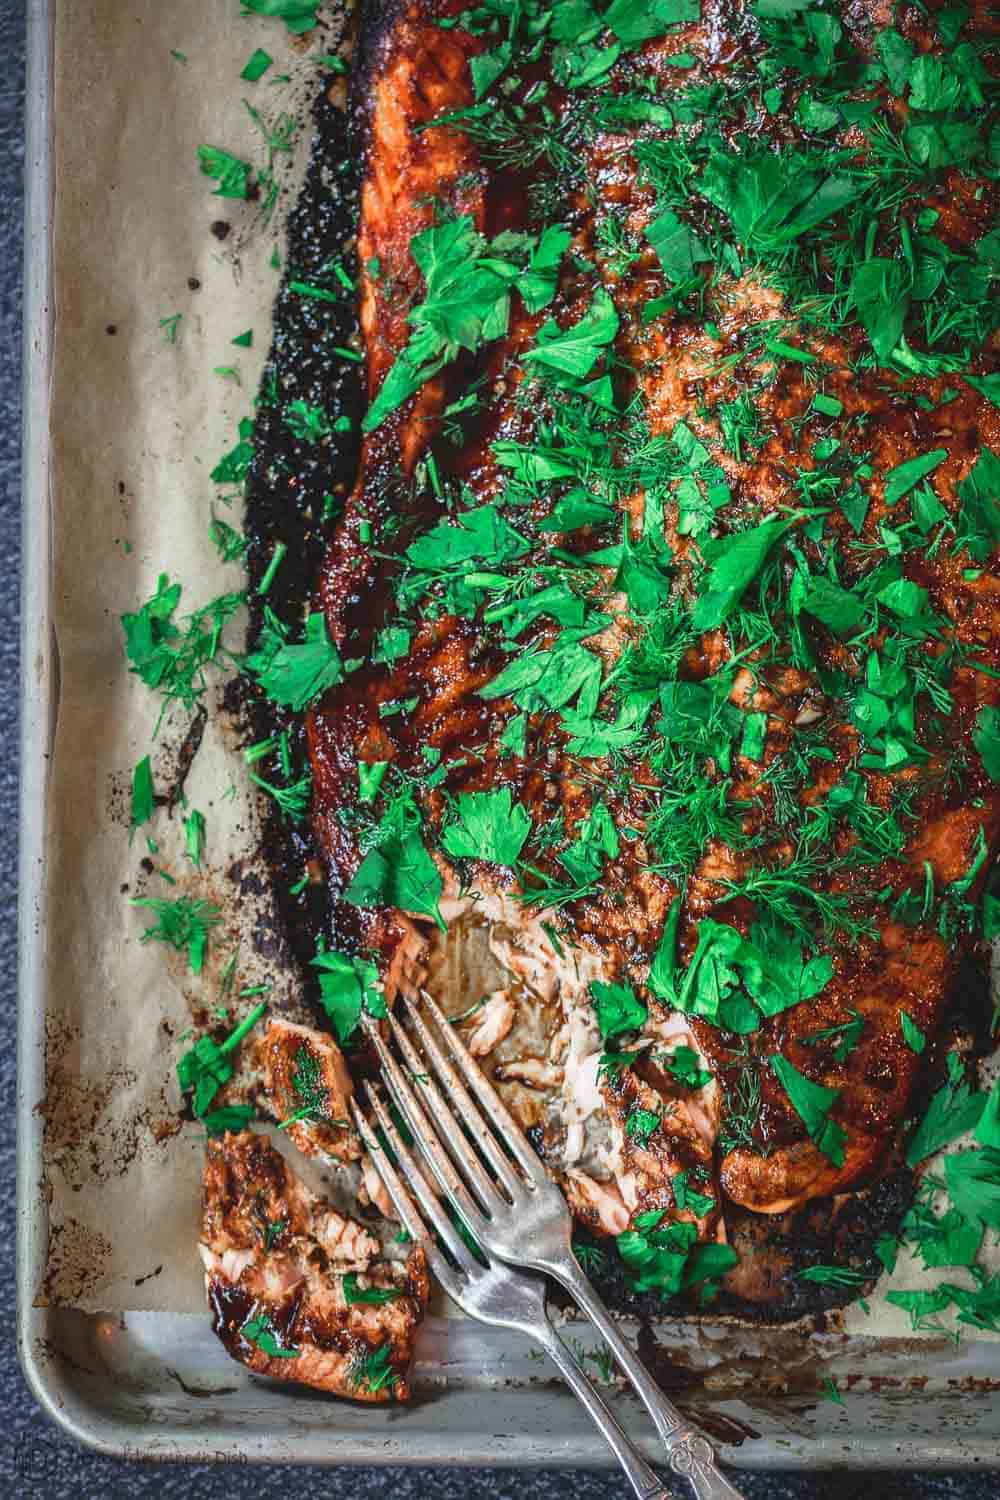 Easy Baked Salmon With Garlic Balsamic Glaze The Mediterranean Dish